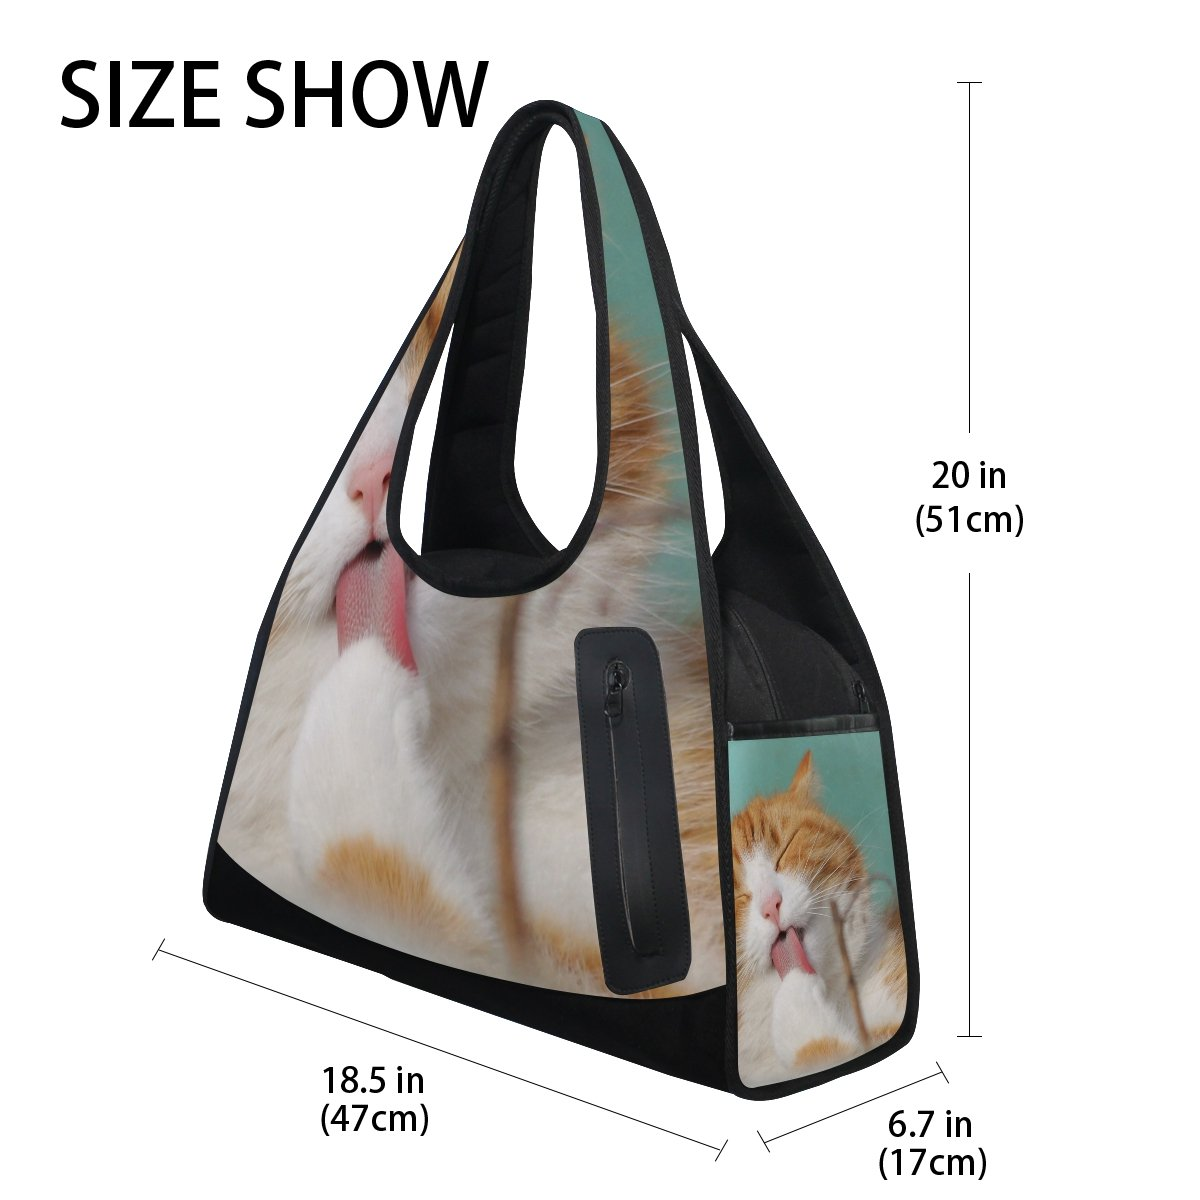 AHOMY Sports Gym Bag Cat Lovely Duffel Bag Travel Shoulder Bag